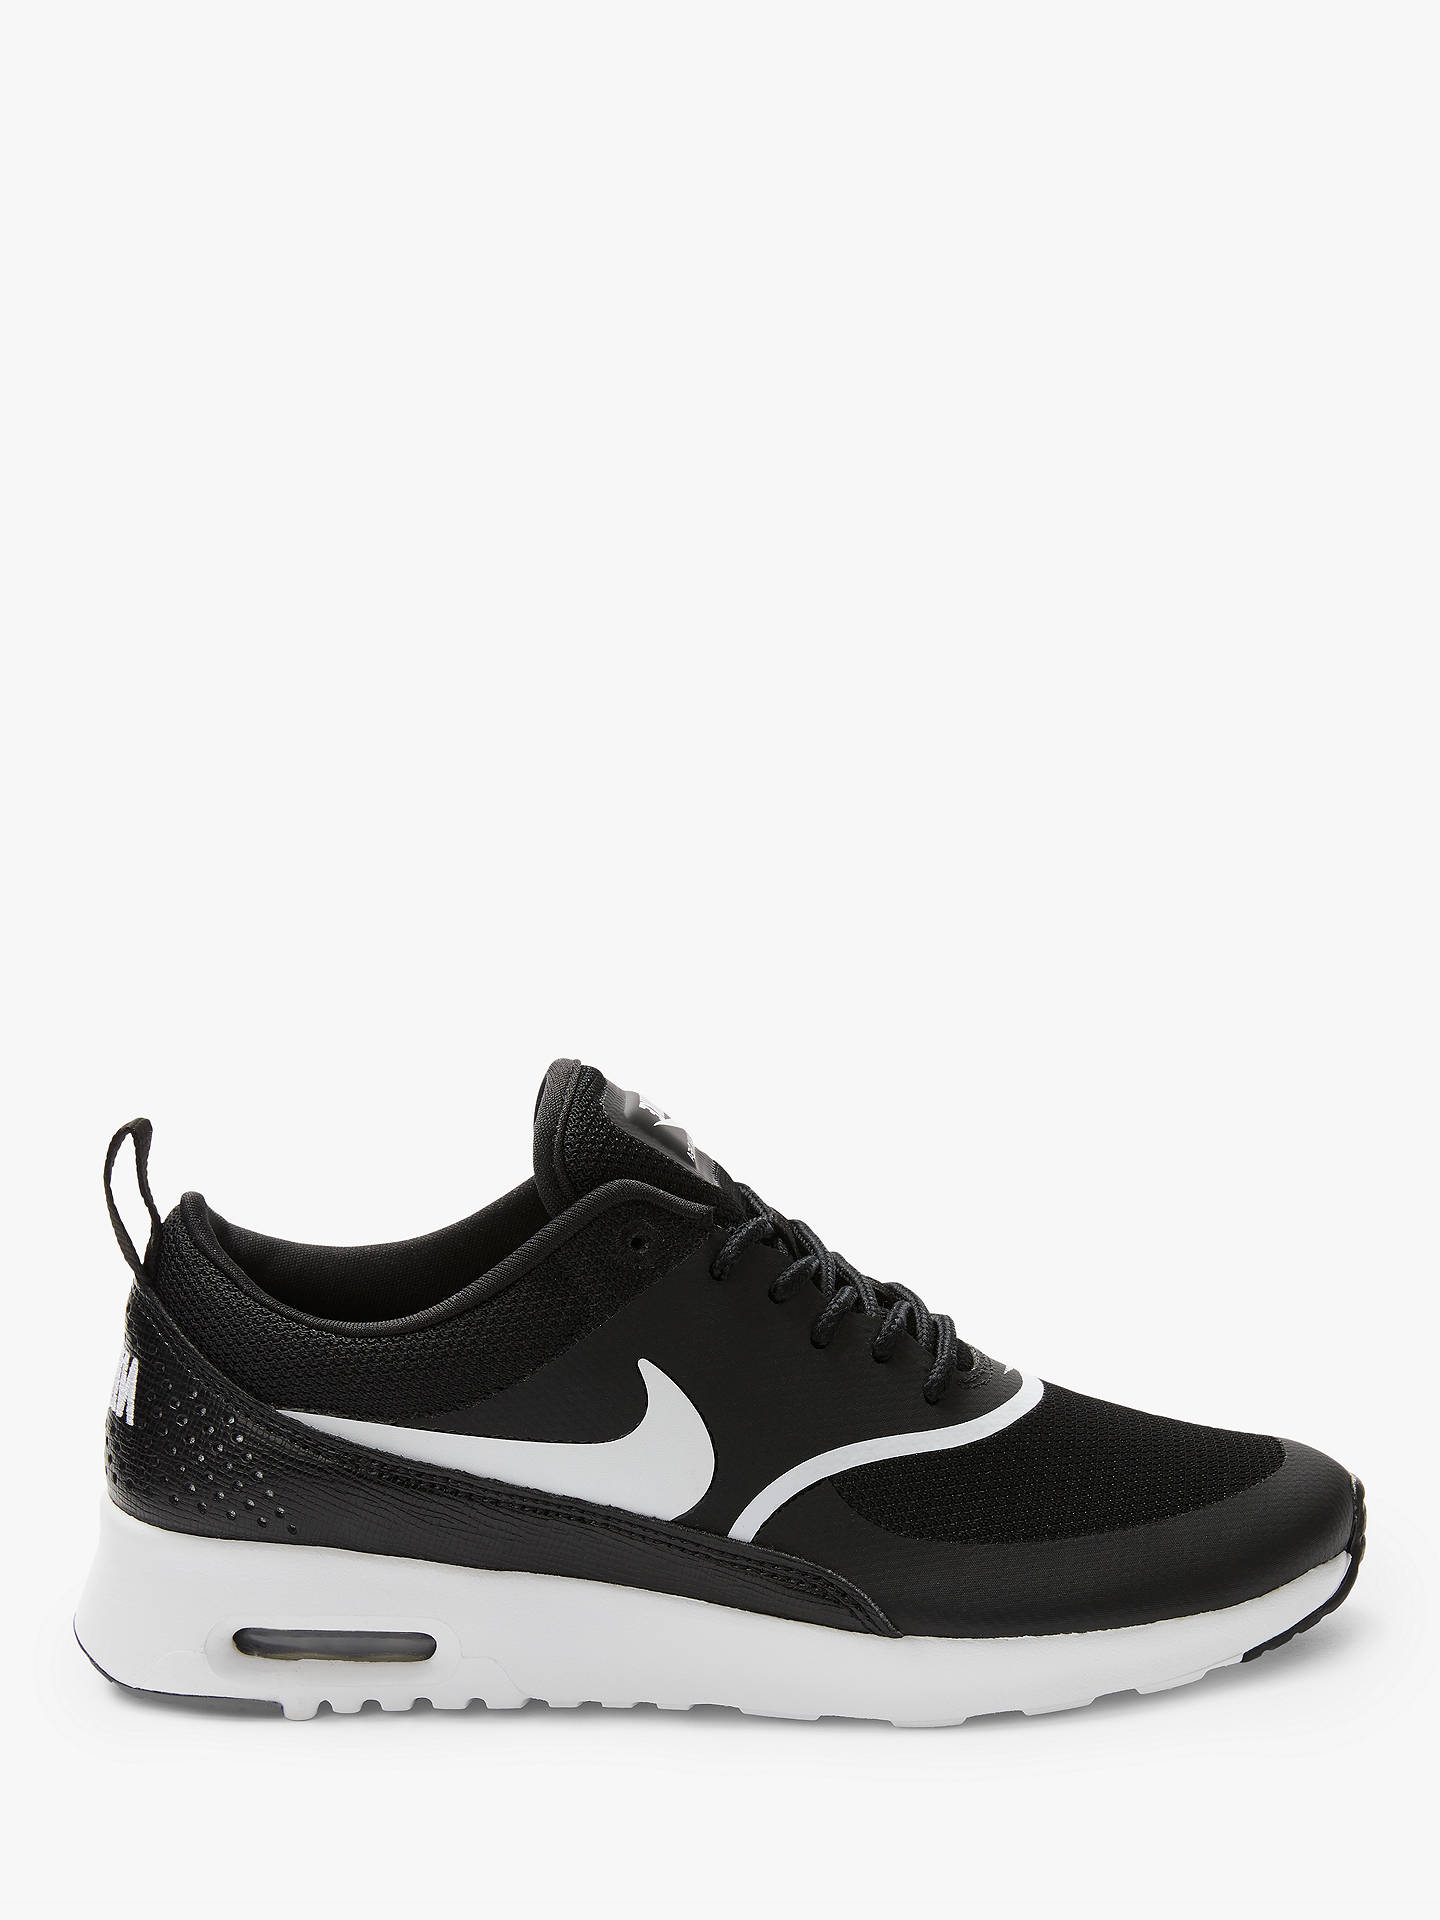 Nike Air Max Thea BlackWhite Girl Schuhe